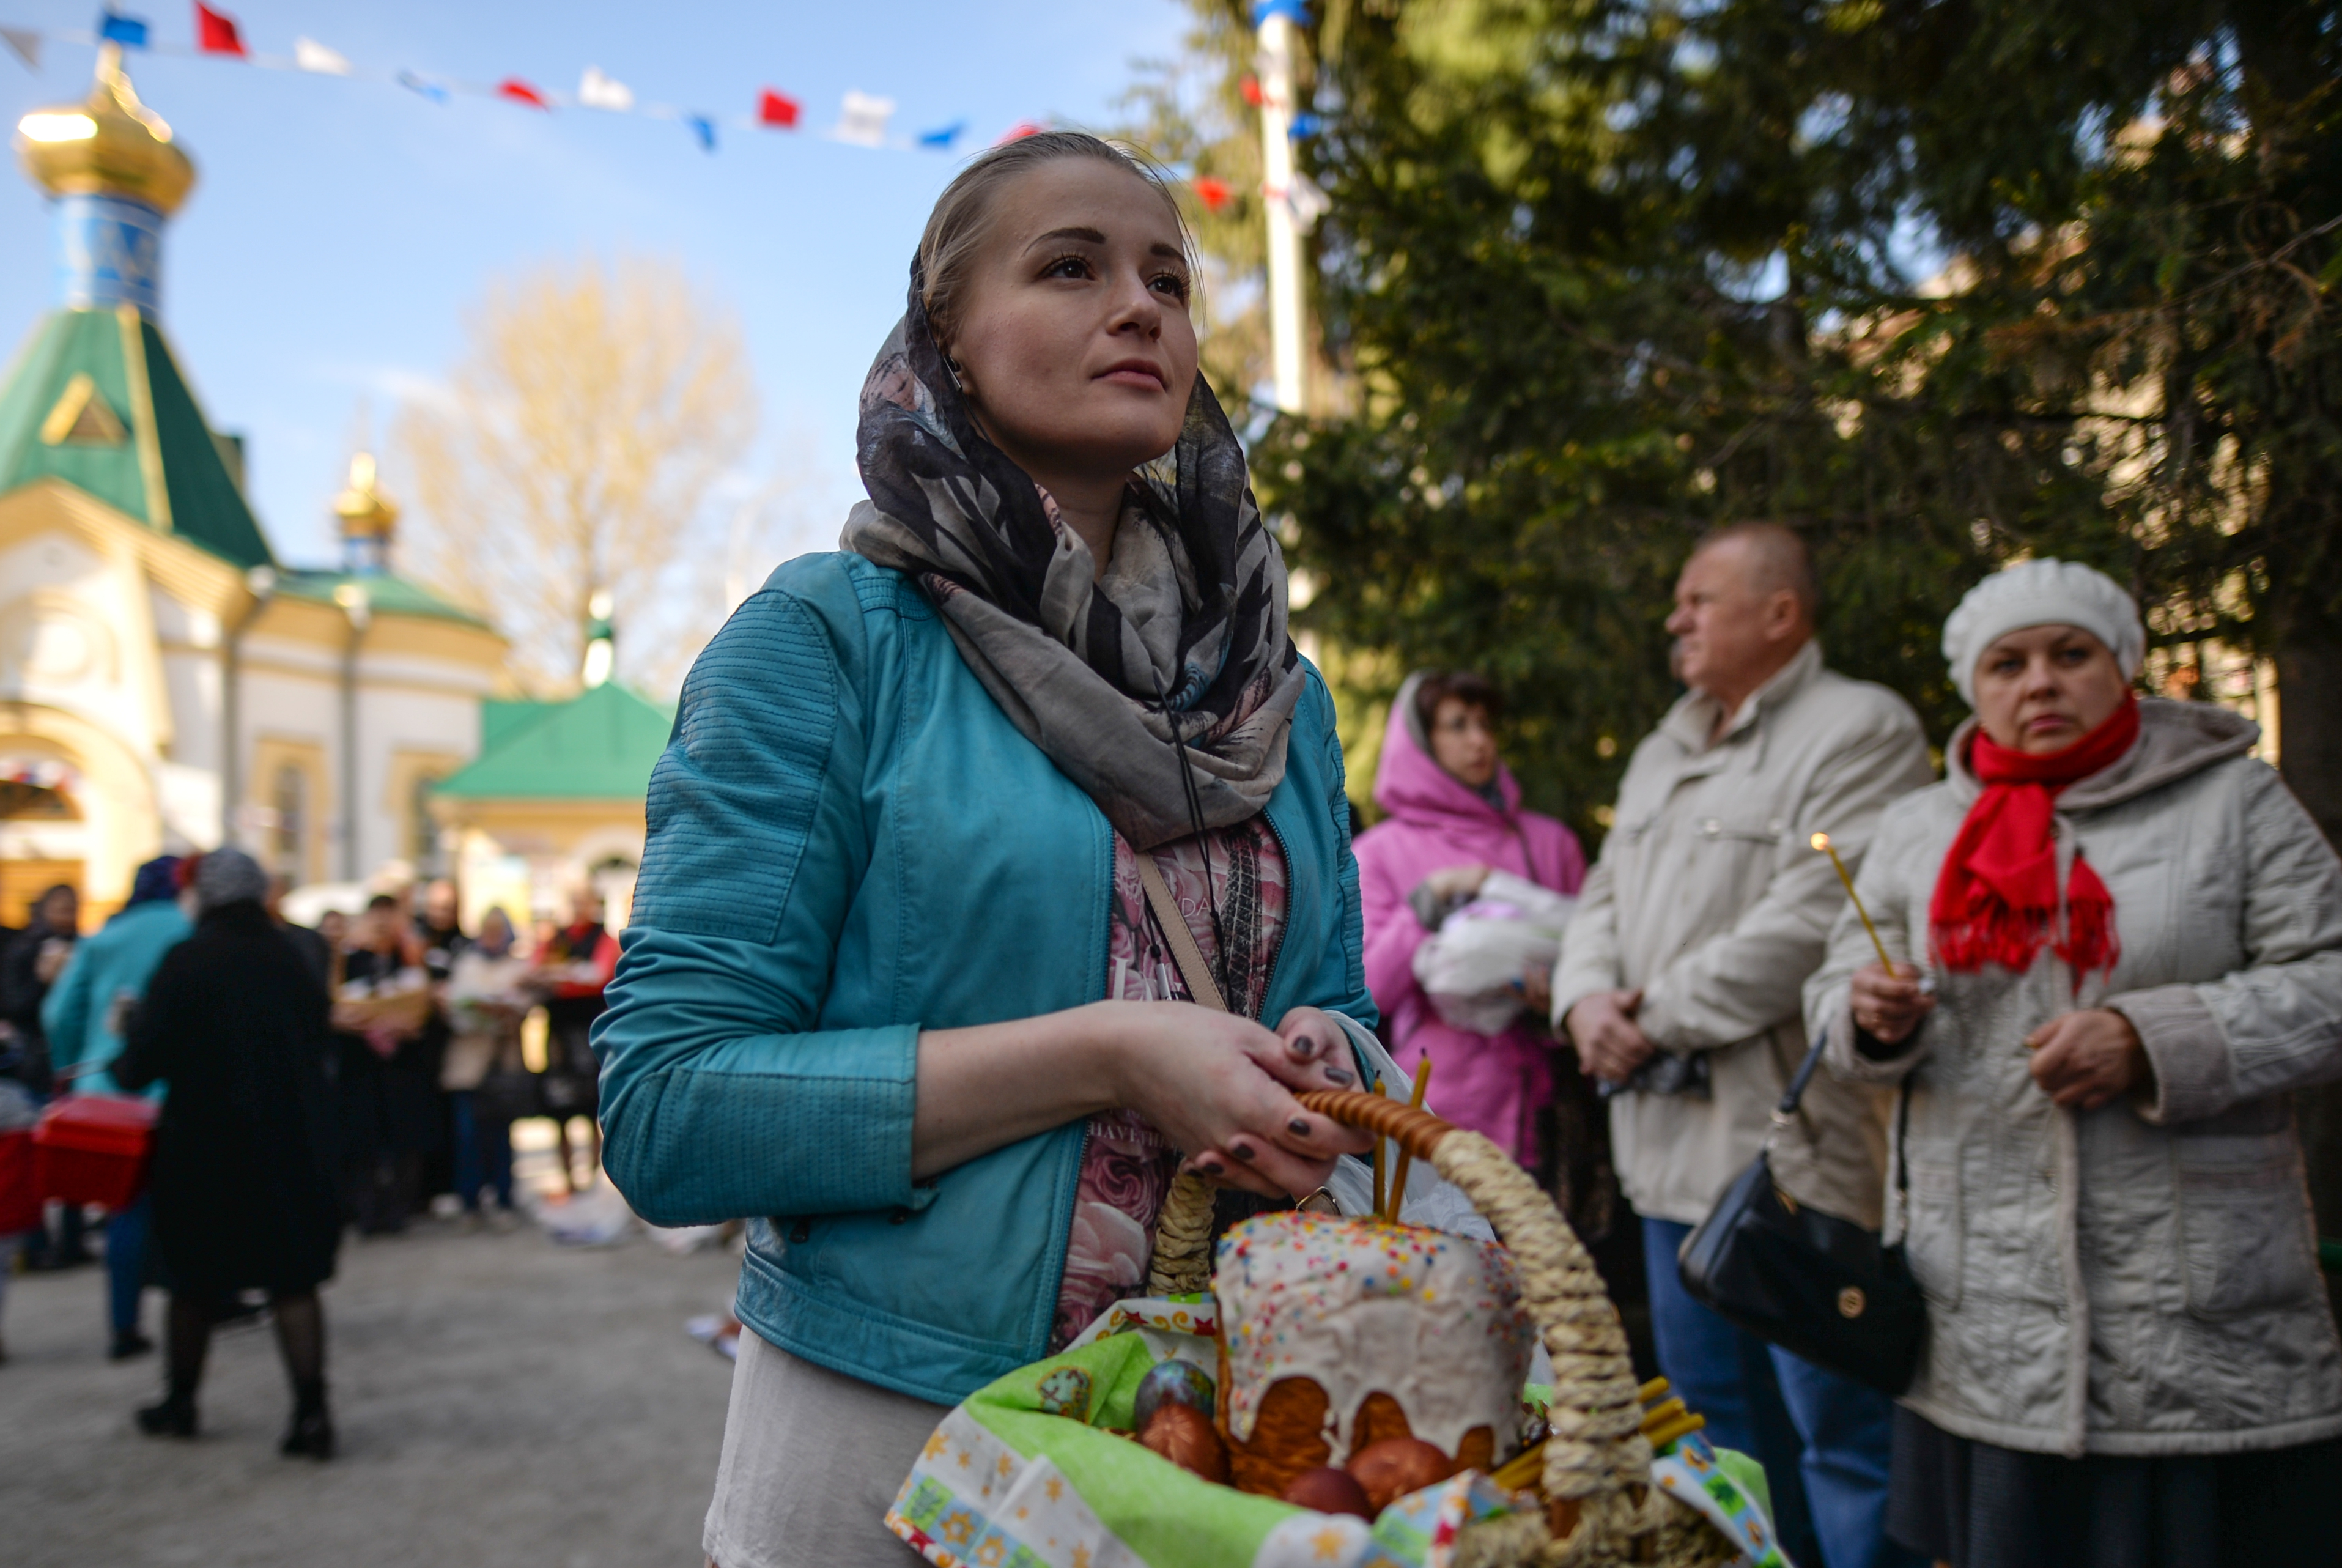 A growing number of young Russians find religion appealing. Source: Alexandr Kryazhev/RIA Novosti